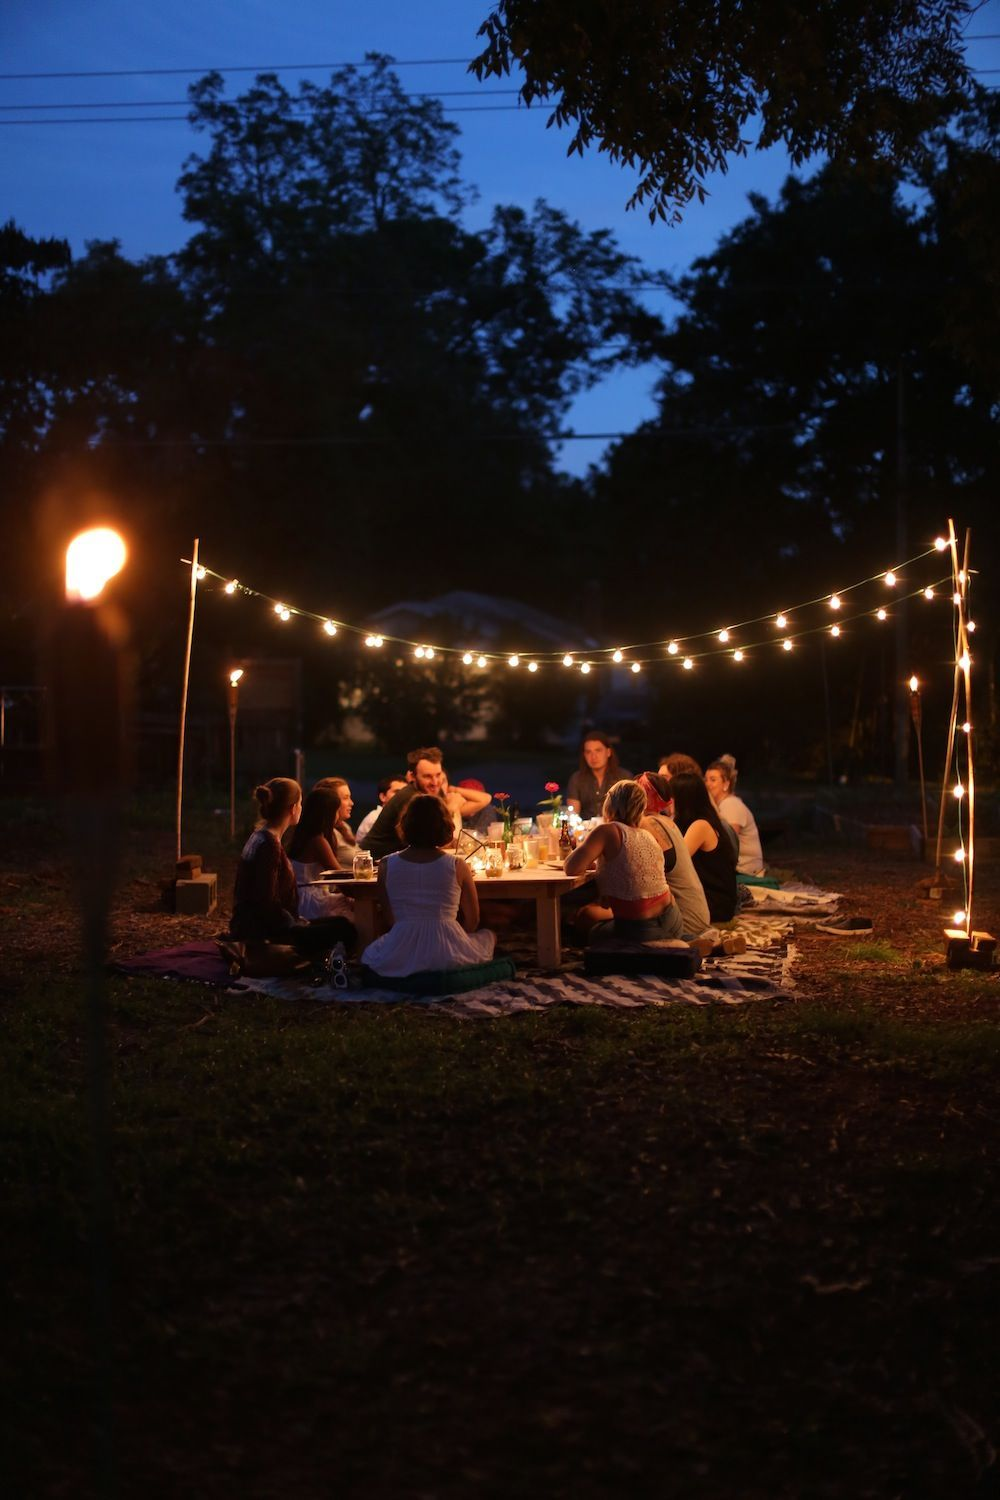 Dreamers + Doers: Tallahassee | Summer friends, Camping ...